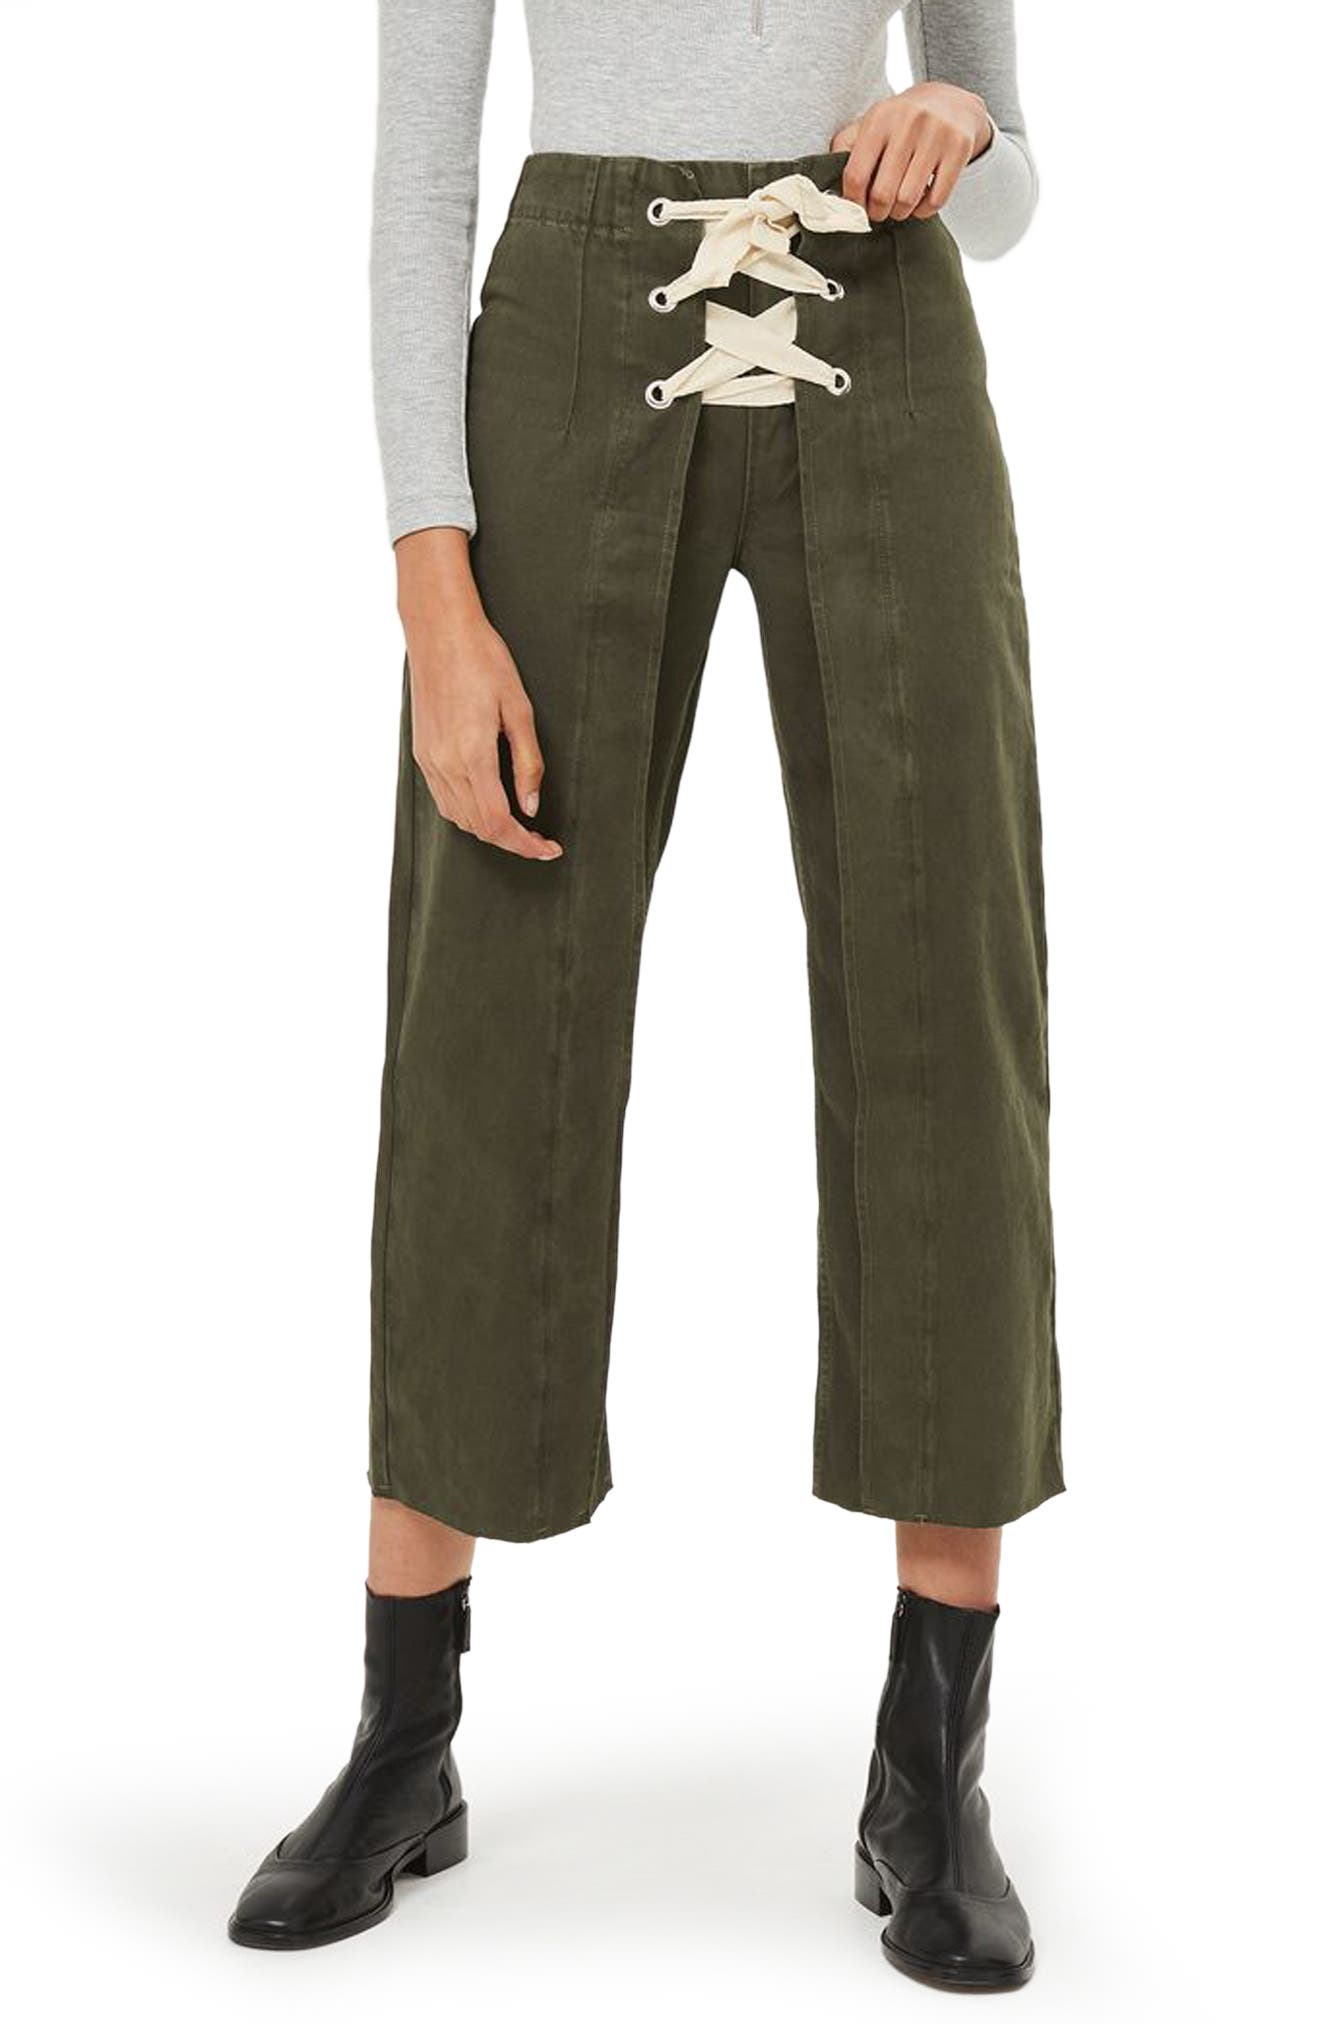 Topshop Khaki Lace-Up Wide Crop Jeans